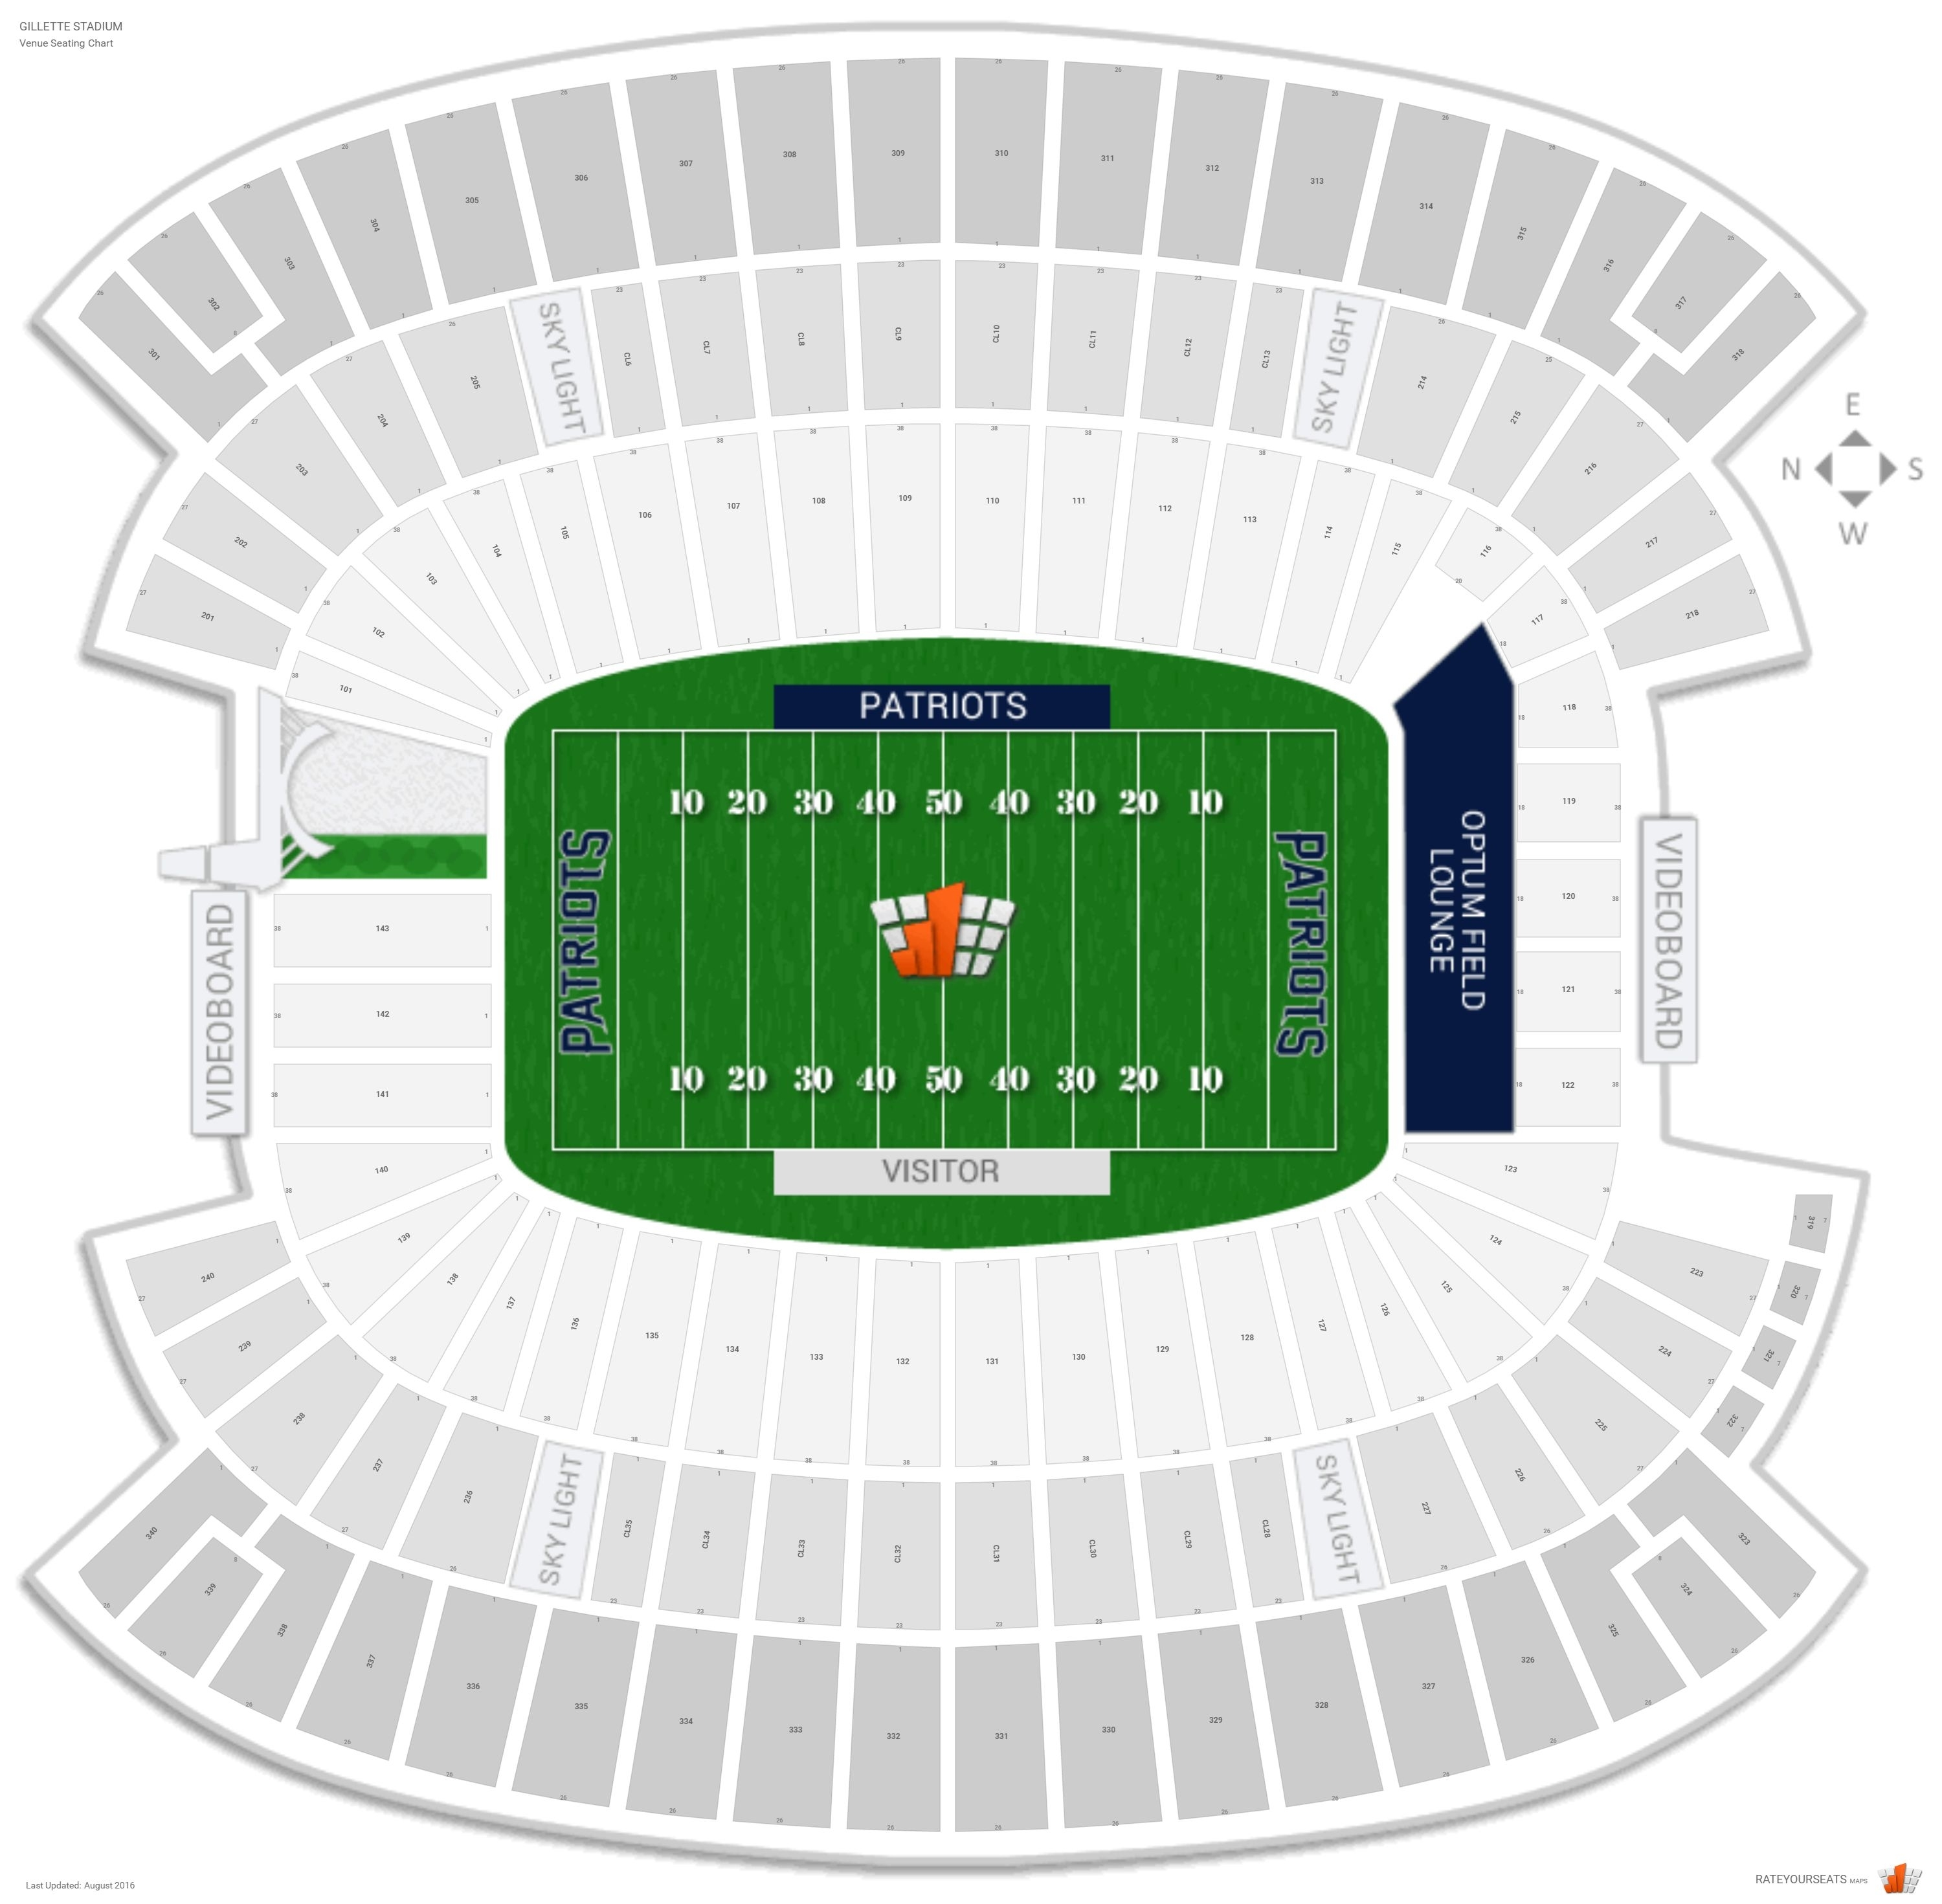 New England Patriots Seating Guide - Gillette Stadium for Super Bowl Seating Chart Seat Numbers